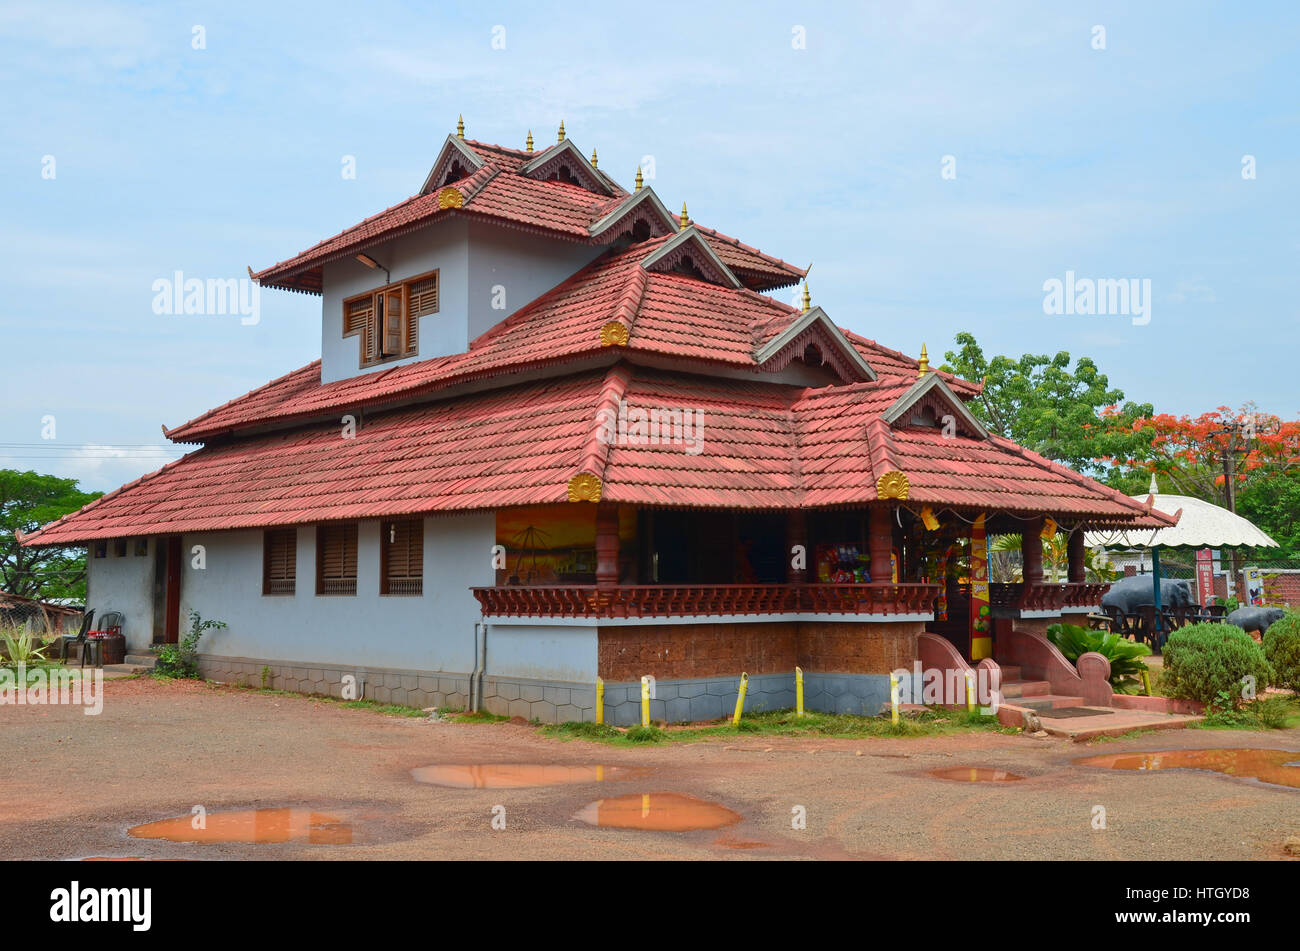 Traditional Architecture Of A Tiled Roof House In Kerala, Using Mainly Wood  Mangalore Tiles